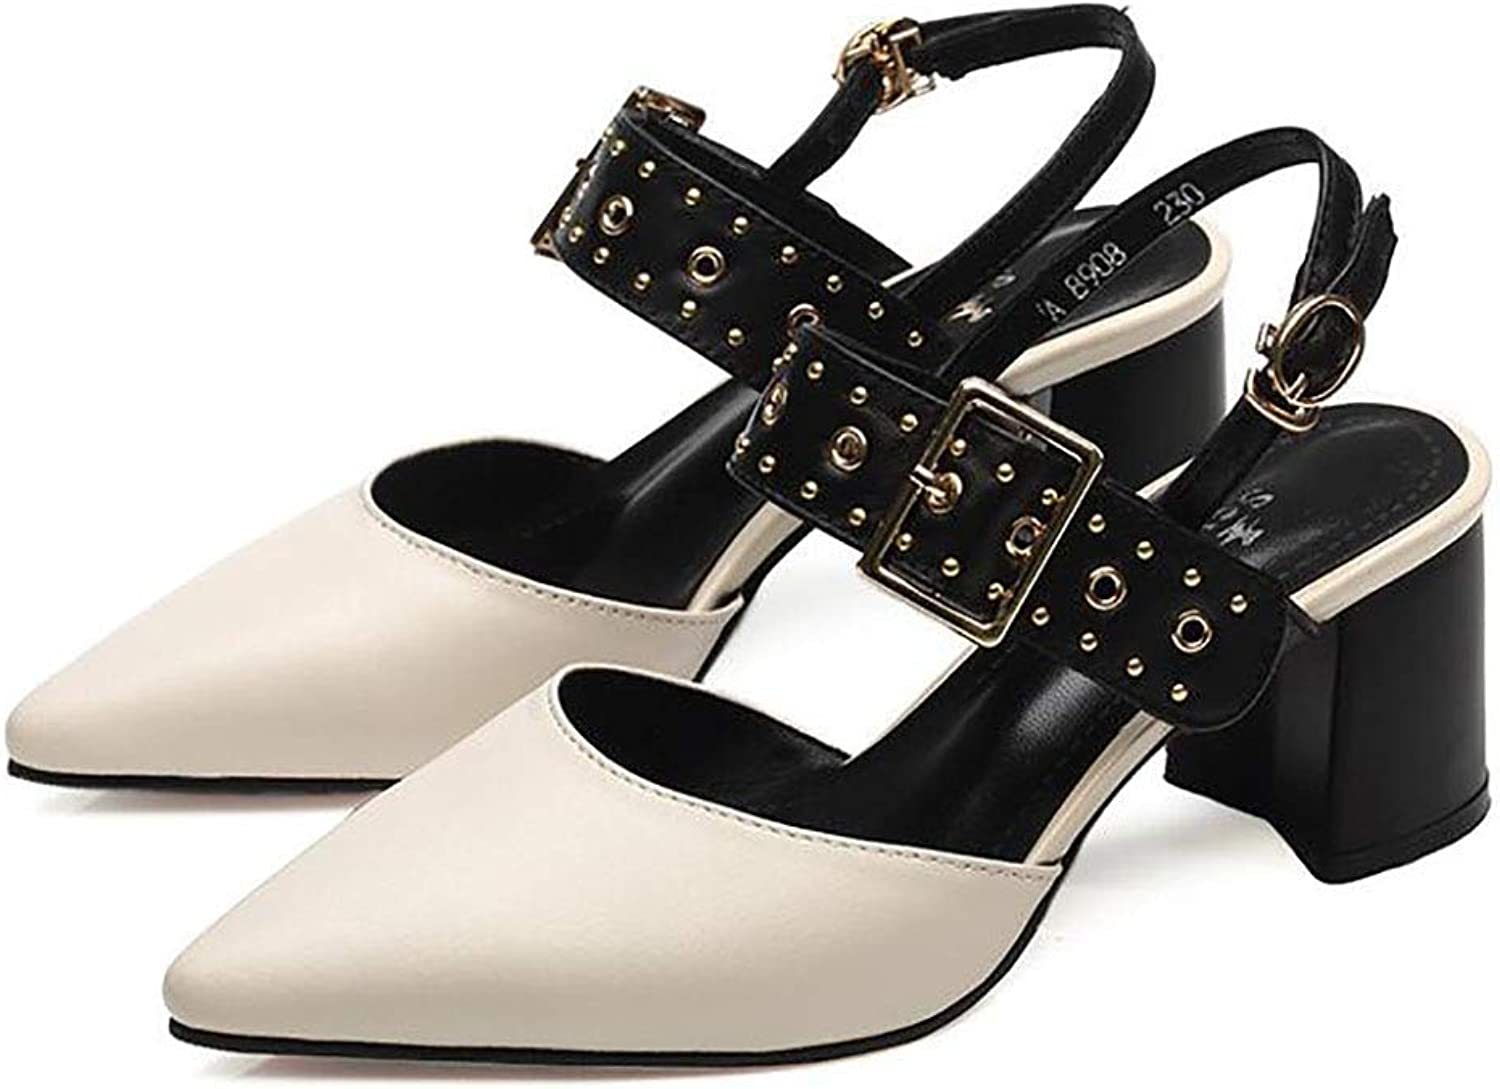 Women's shoes, Summer, Middle-Heeled shoes, Thick and Comfortable shoes, one-Button shoes (color   B, Size   39)